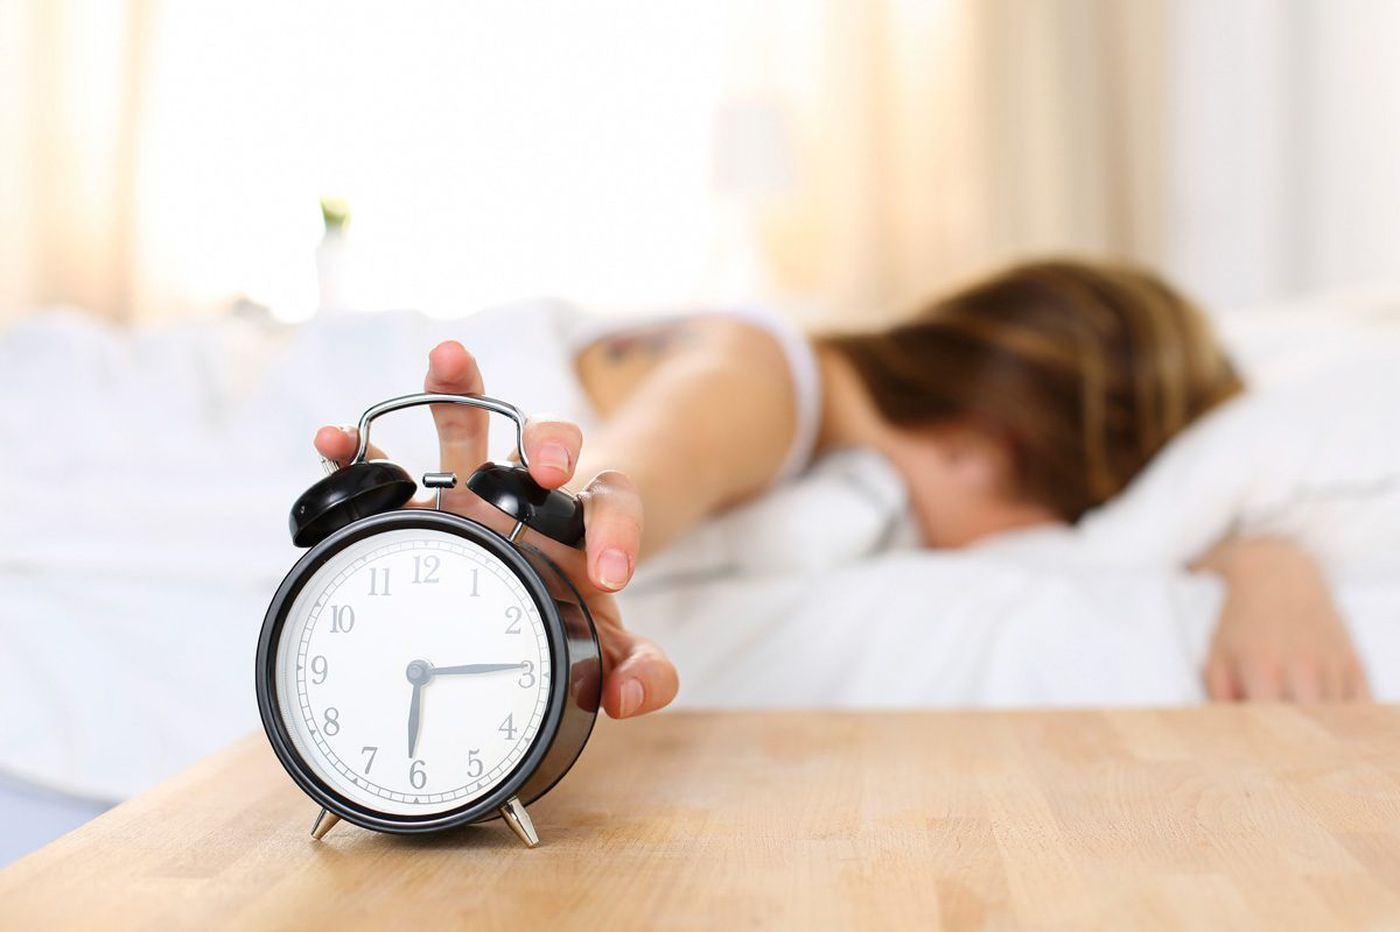 Springing ahead for daylight saving time may contribute to health problems, car accidents